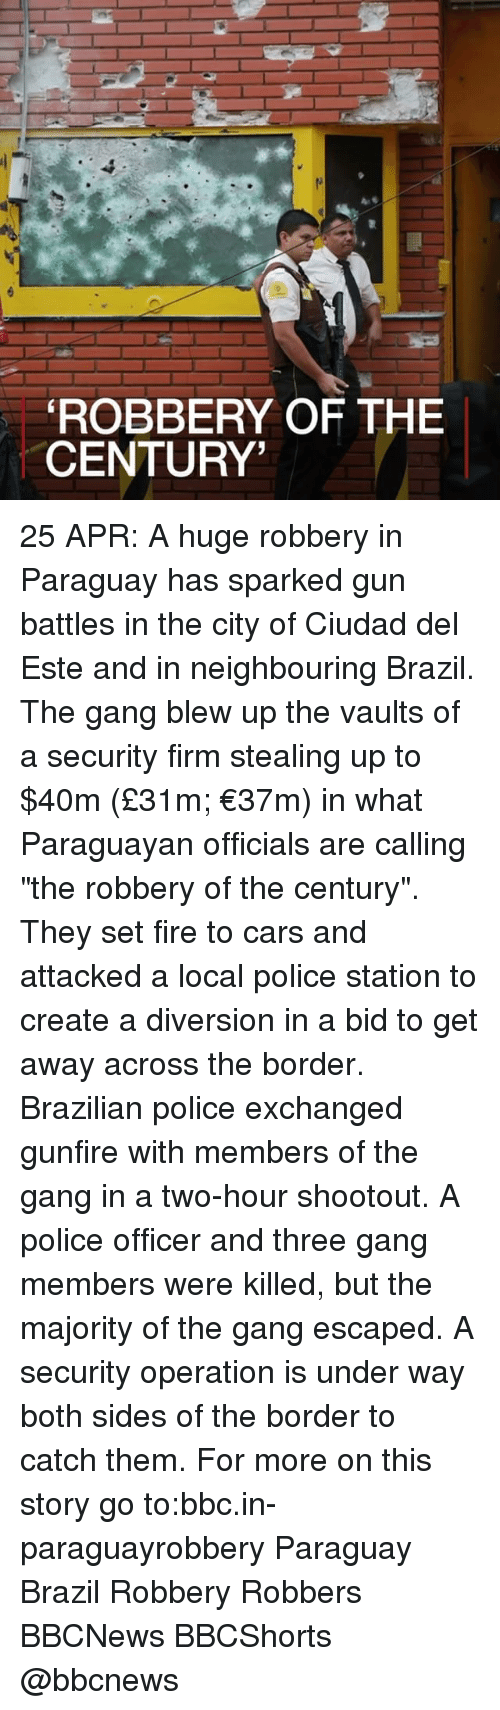 "Cars, Fire, and Memes: ROBBERY OF THE  CENTURY' 25 APR: A huge robbery in Paraguay has sparked gun battles in the city of Ciudad del Este and in neighbouring Brazil. The gang blew up the vaults of a security firm stealing up to $40m (£31m; €37m) in what Paraguayan officials are calling ""the robbery of the century"". They set fire to cars and attacked a local police station to create a diversion in a bid to get away across the border. Brazilian police exchanged gunfire with members of the gang in a two-hour shootout. A police officer and three gang members were killed, but the majority of the gang escaped. A security operation is under way both sides of the border to catch them. For more on this story go to:bbc.in-paraguayrobbery Paraguay Brazil Robbery Robbers BBCNews BBCShorts @bbcnews"